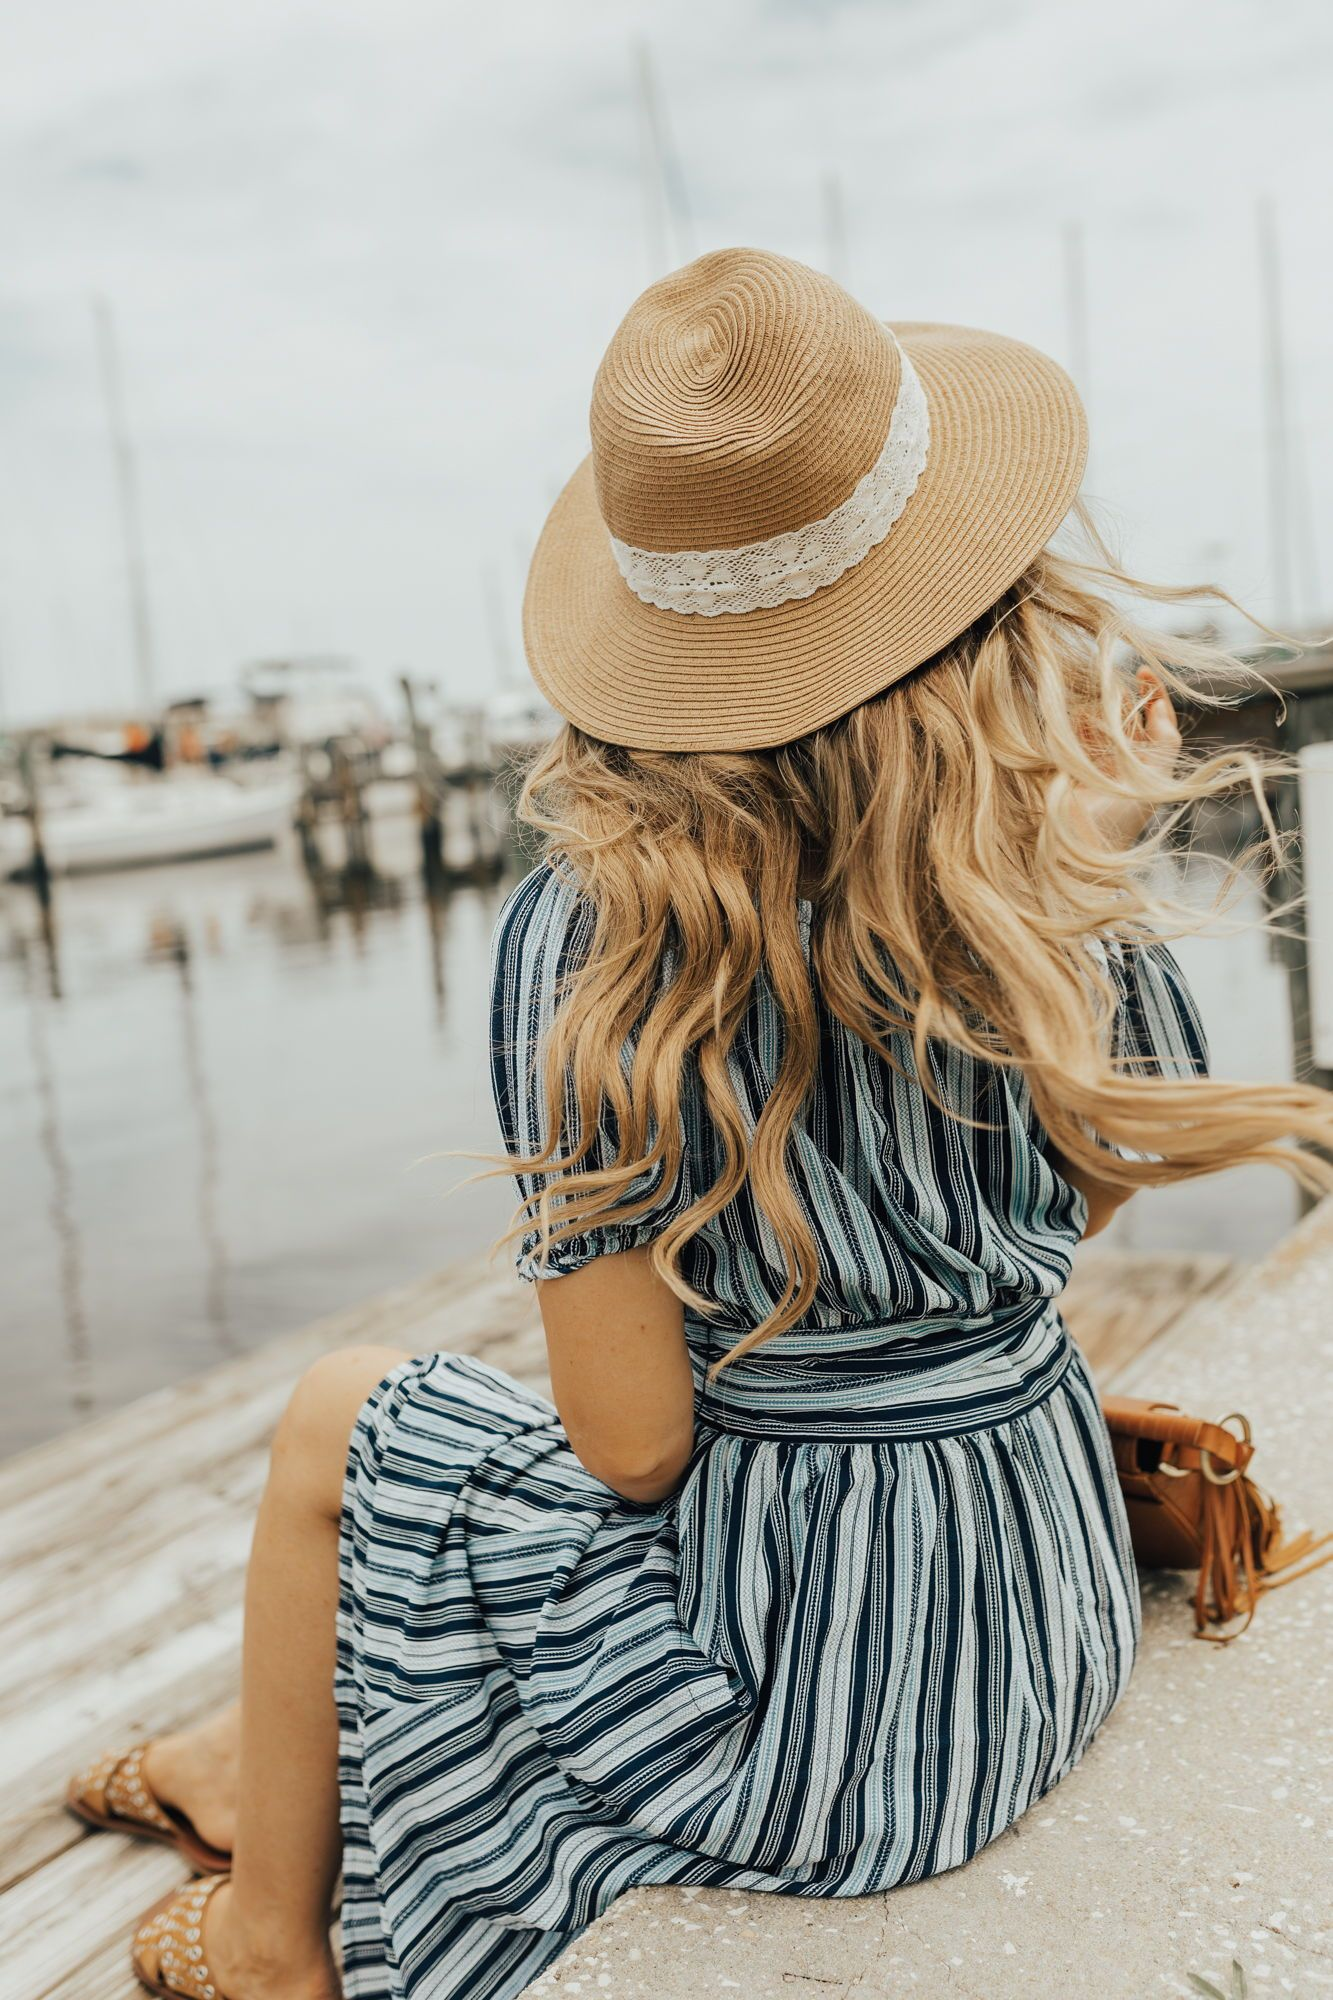 875caa78e30 Boho vacation outfit styled with striped off the shoulder maxi dress